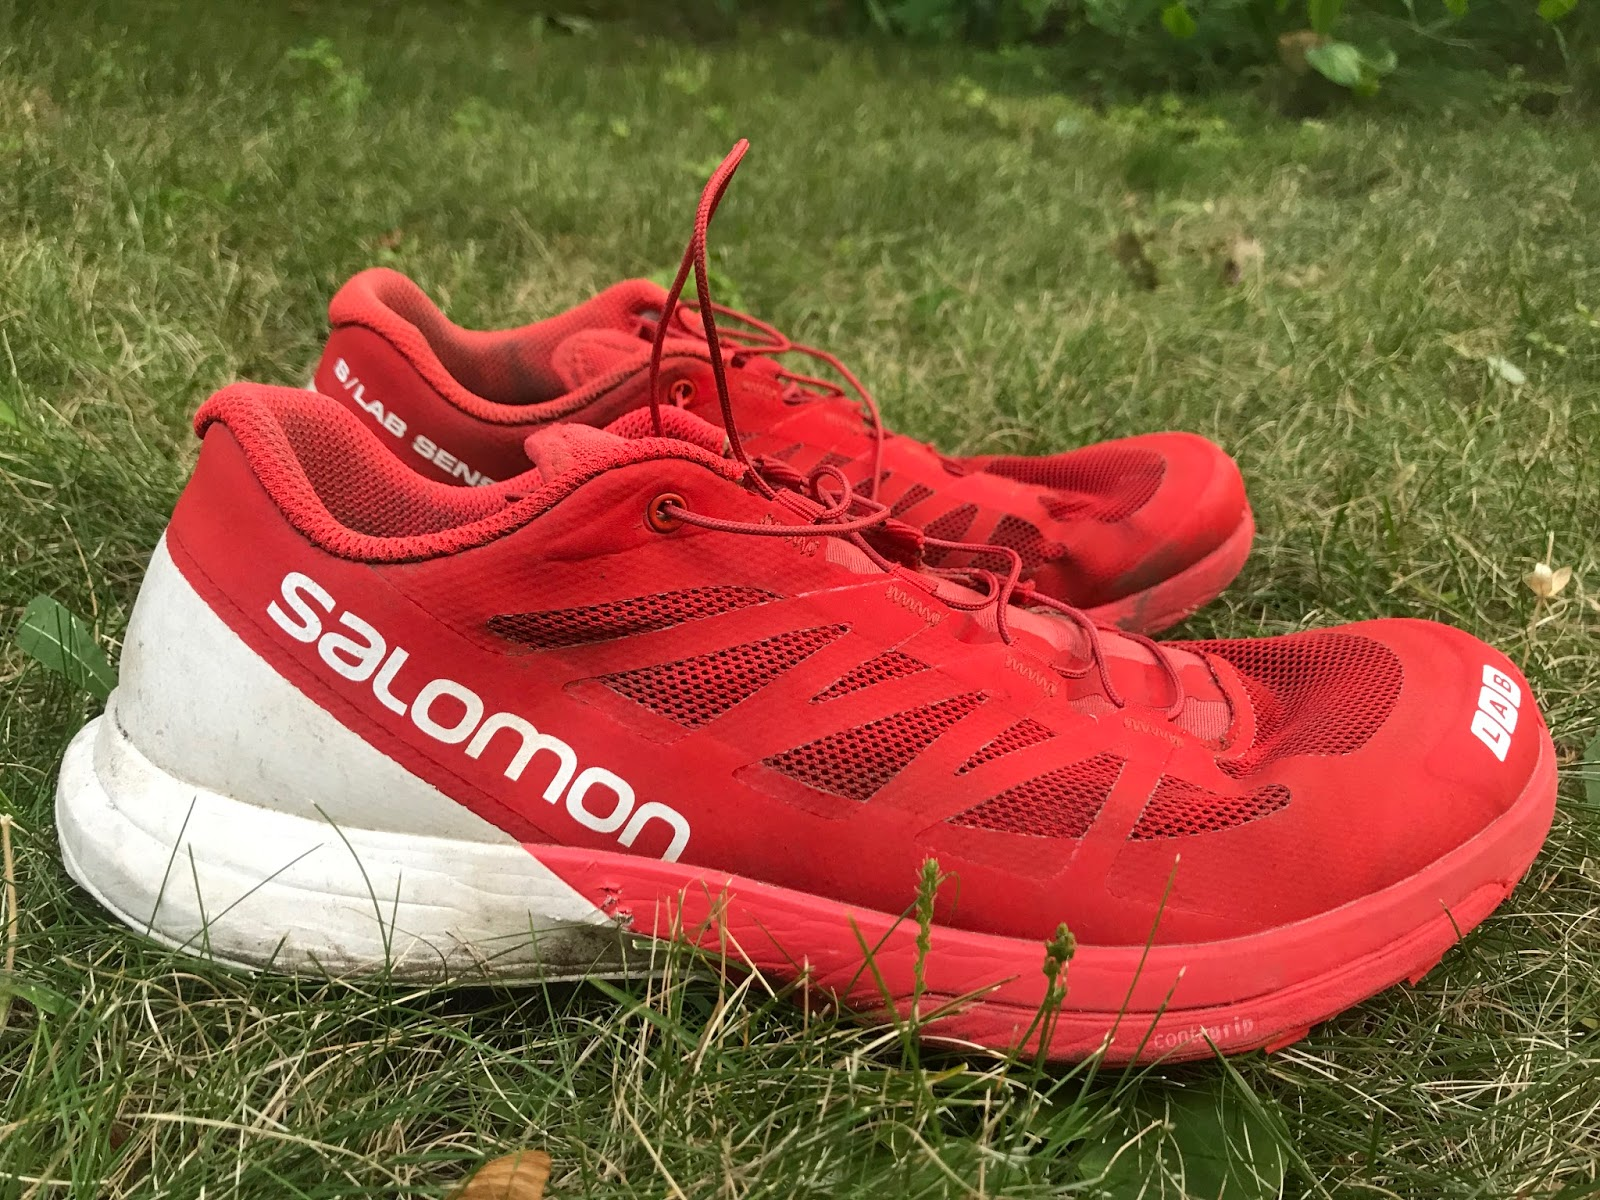 cheap for discount 2220e 11ec4 Road Trail Run: Salomon S/Lab Sense 6 and Sense 6 SG Review ...